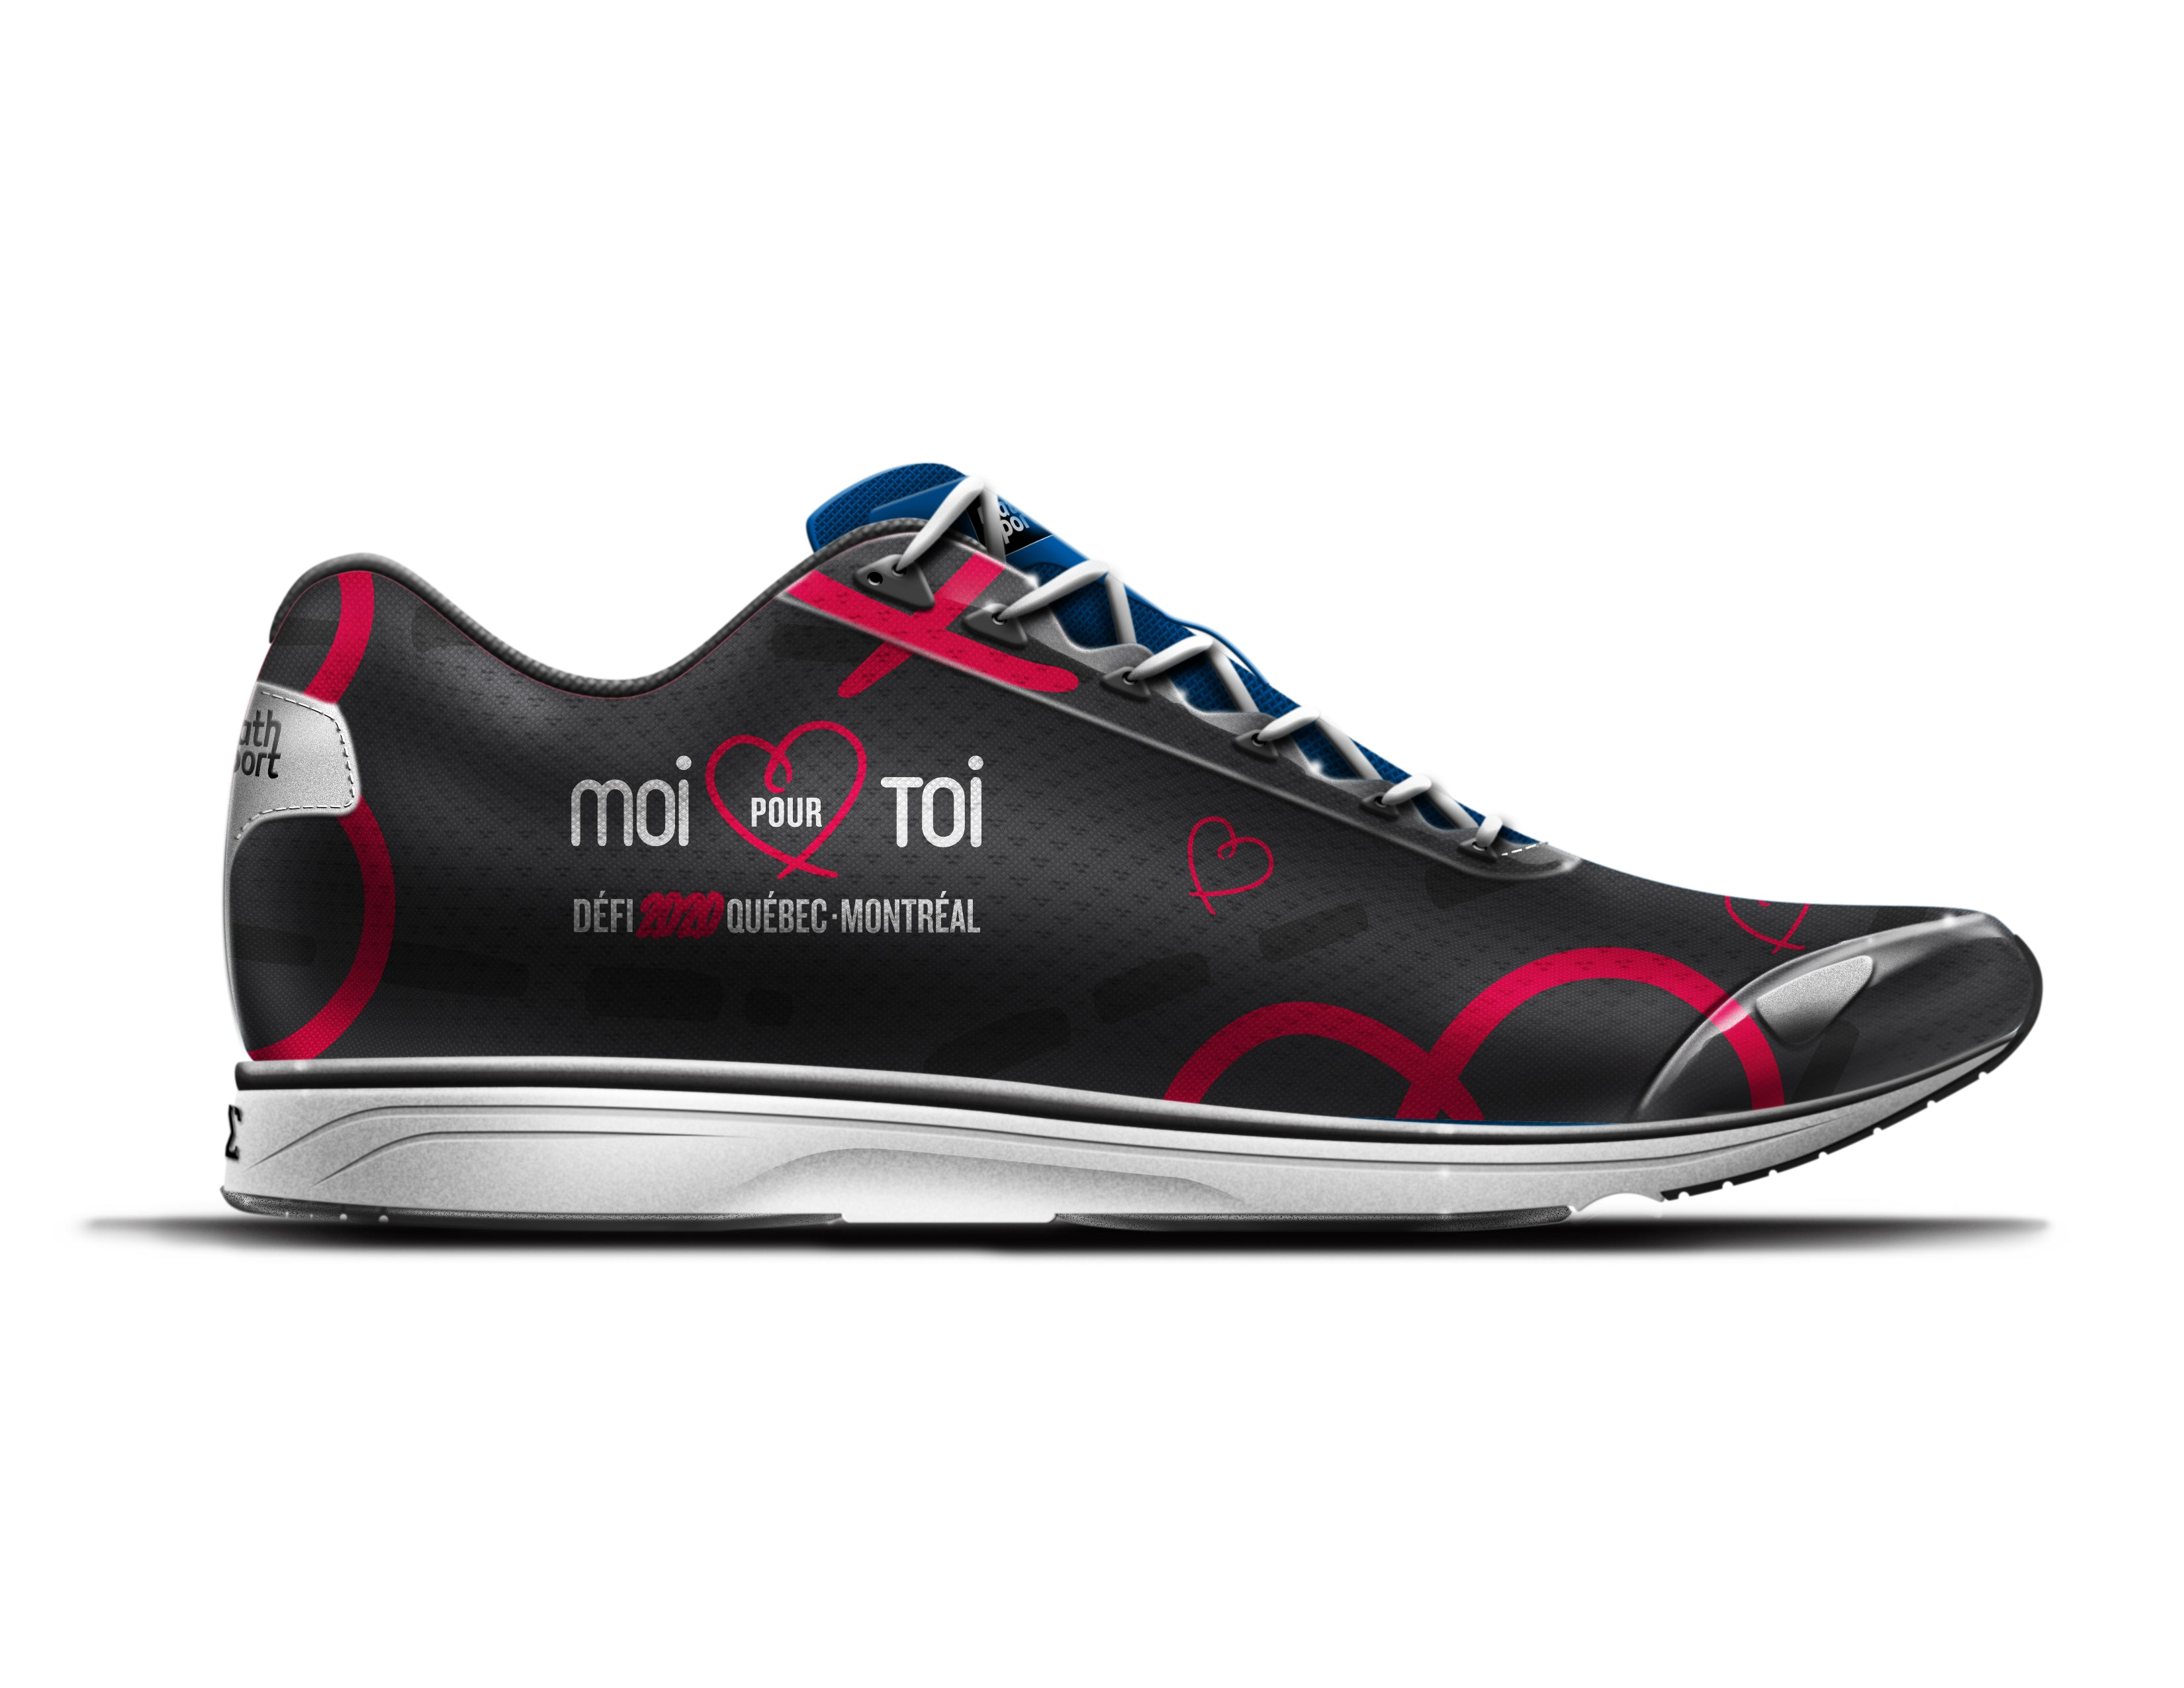 moipourtoi - dark - 7mm - cushioned